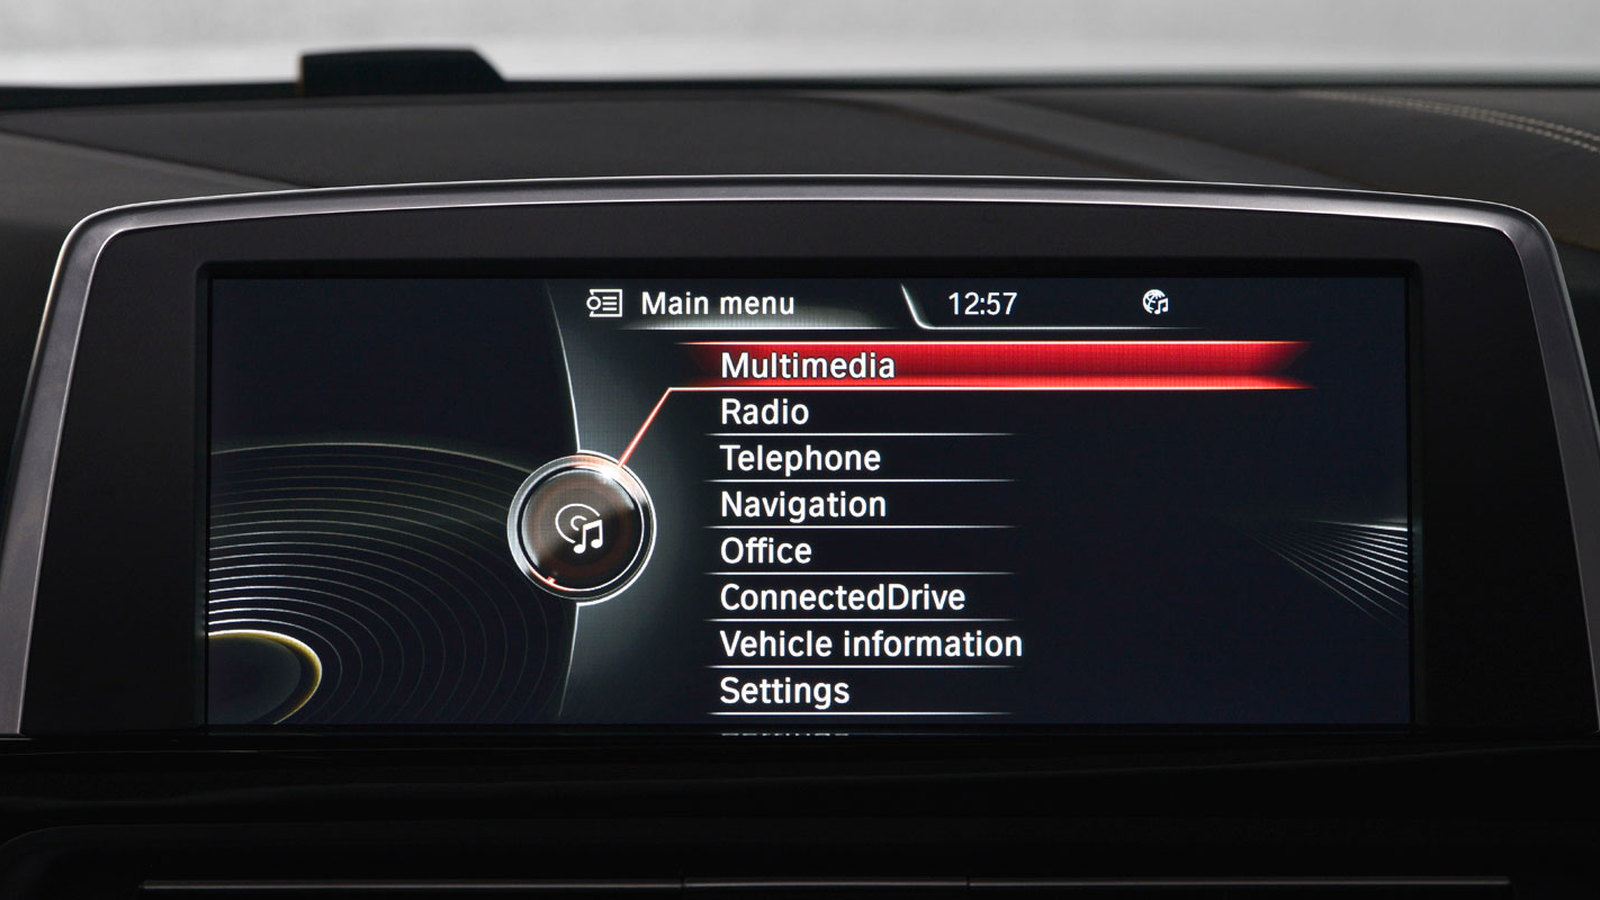 2013 BMW ConnectedDrive updates